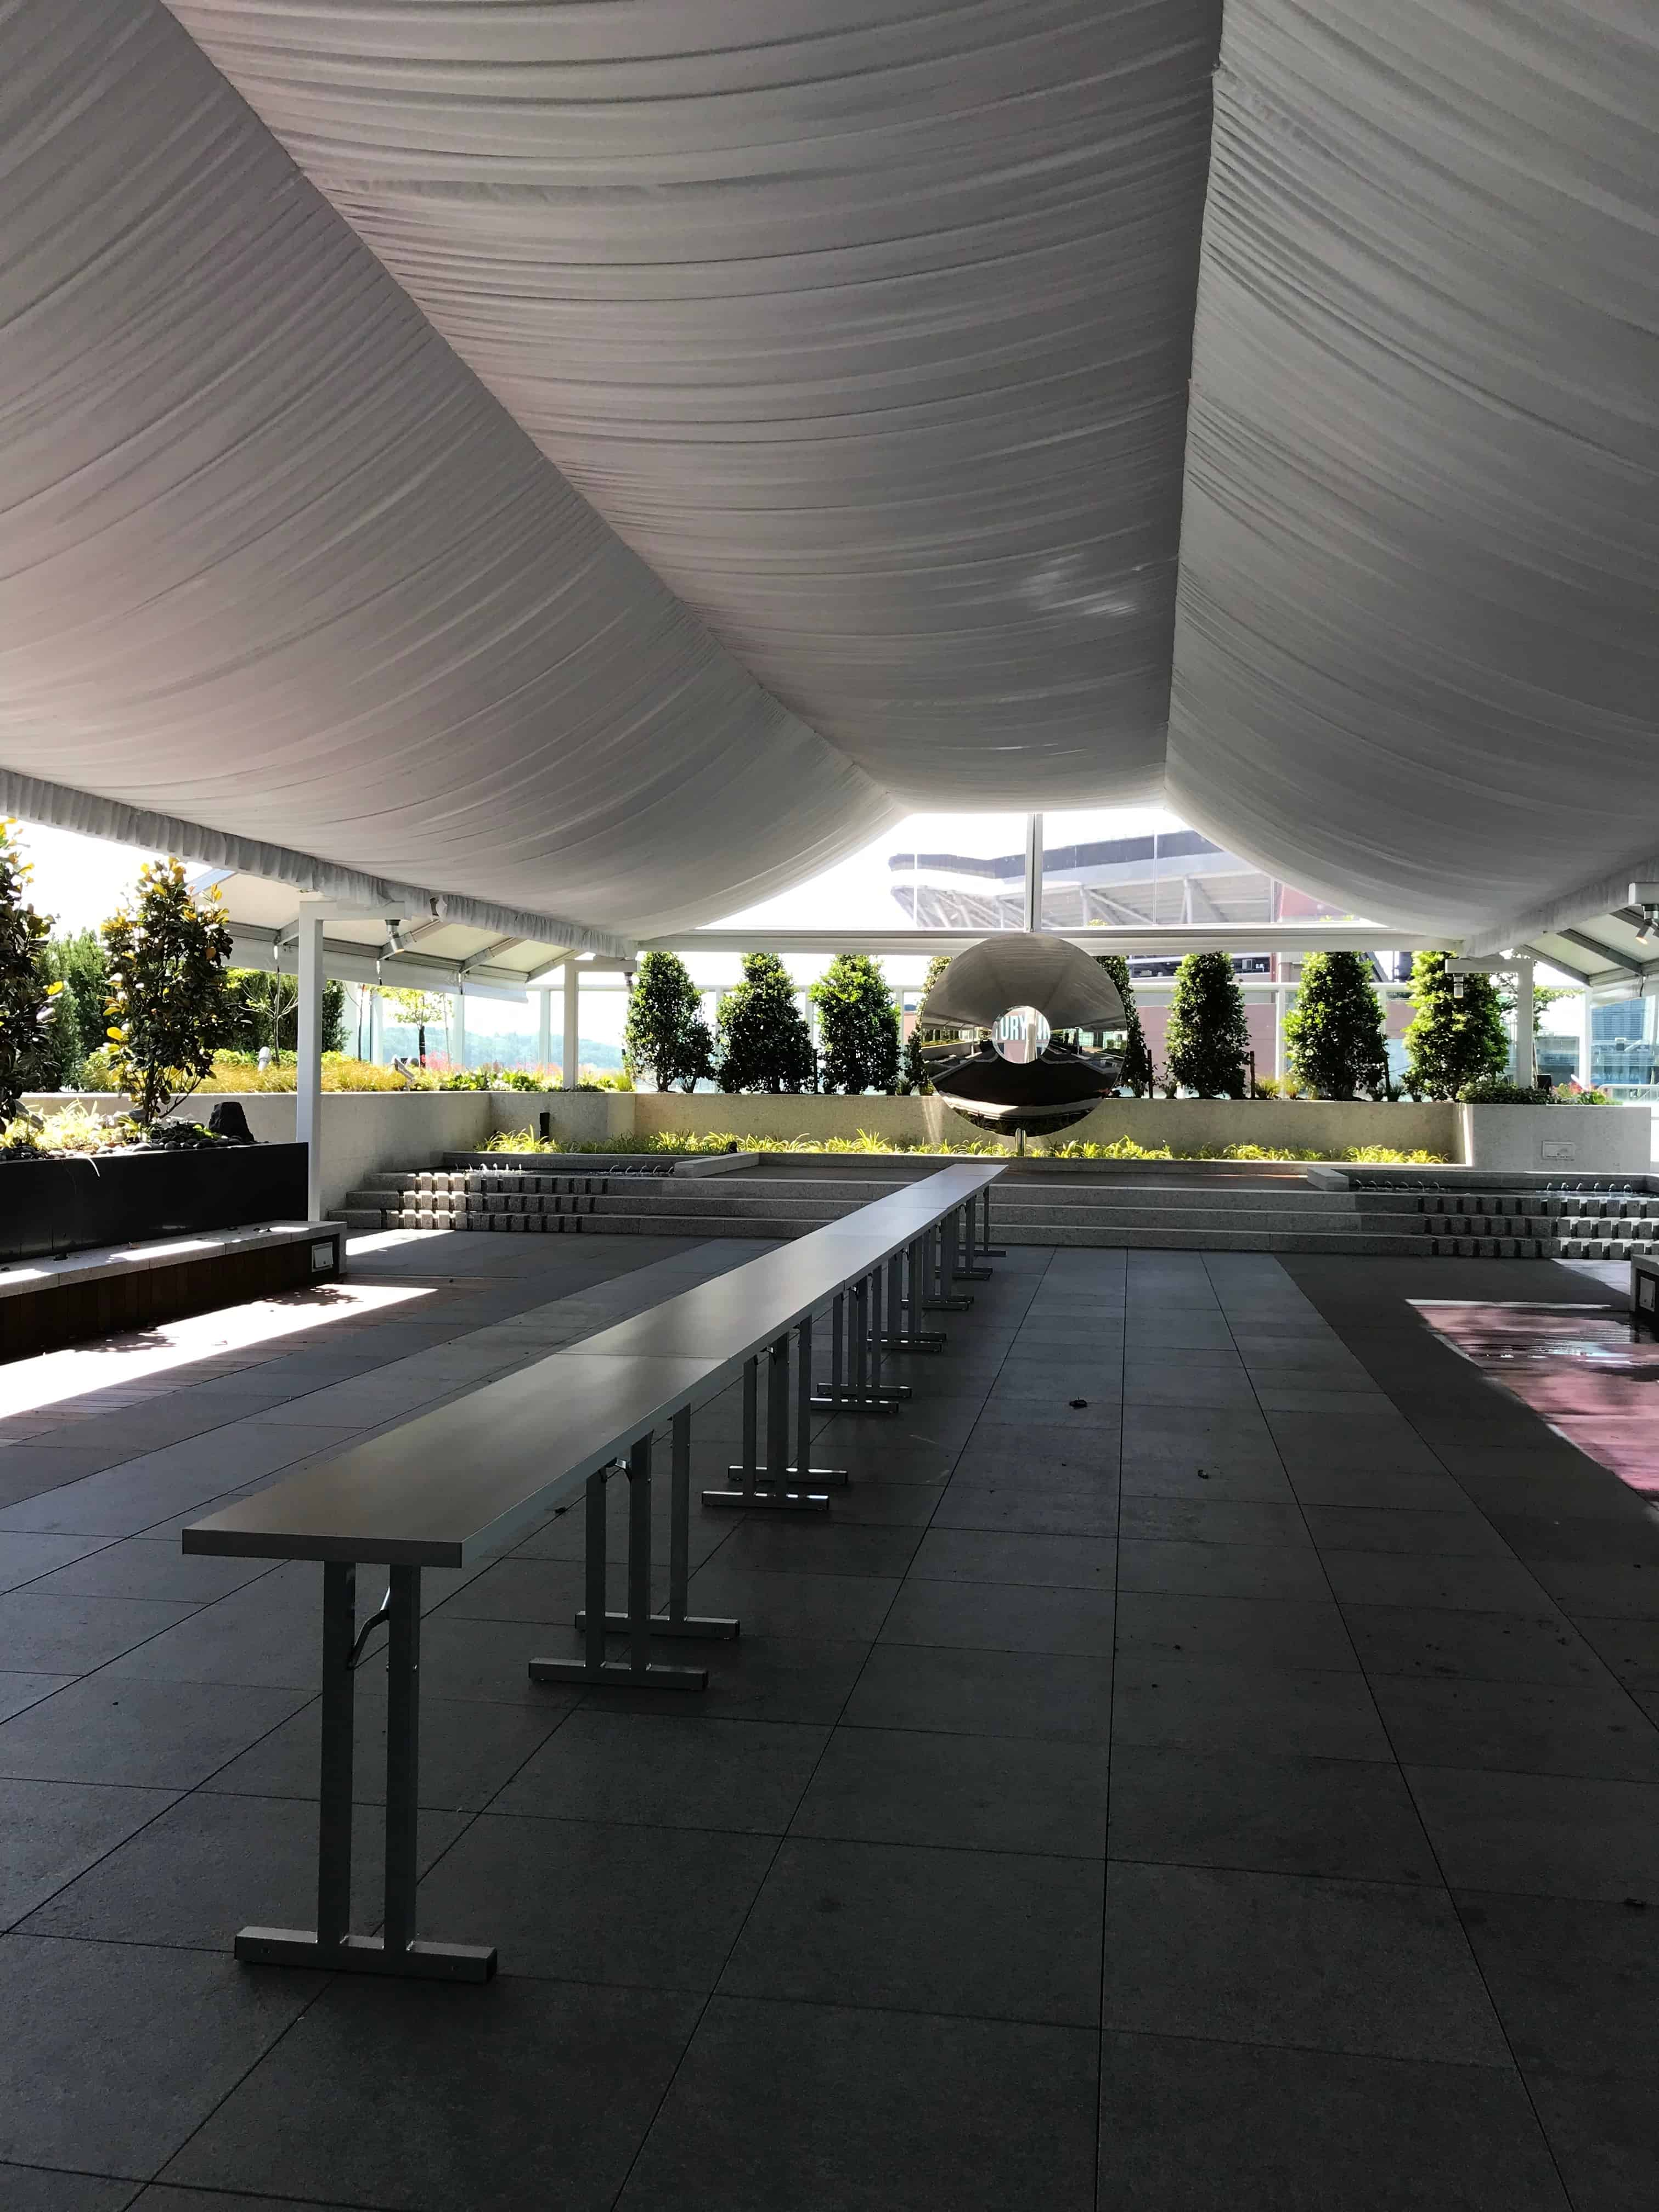 Outdoor Space for Events